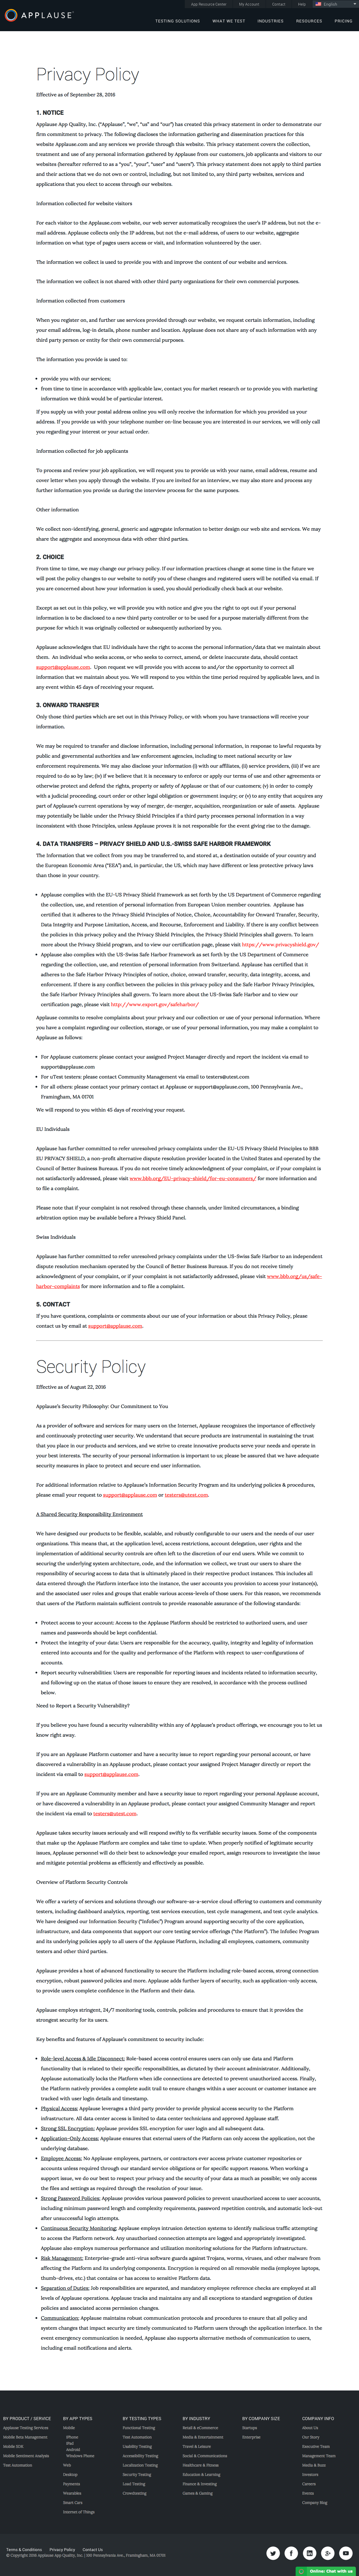 2019 Free Privacy Policy Template Generator